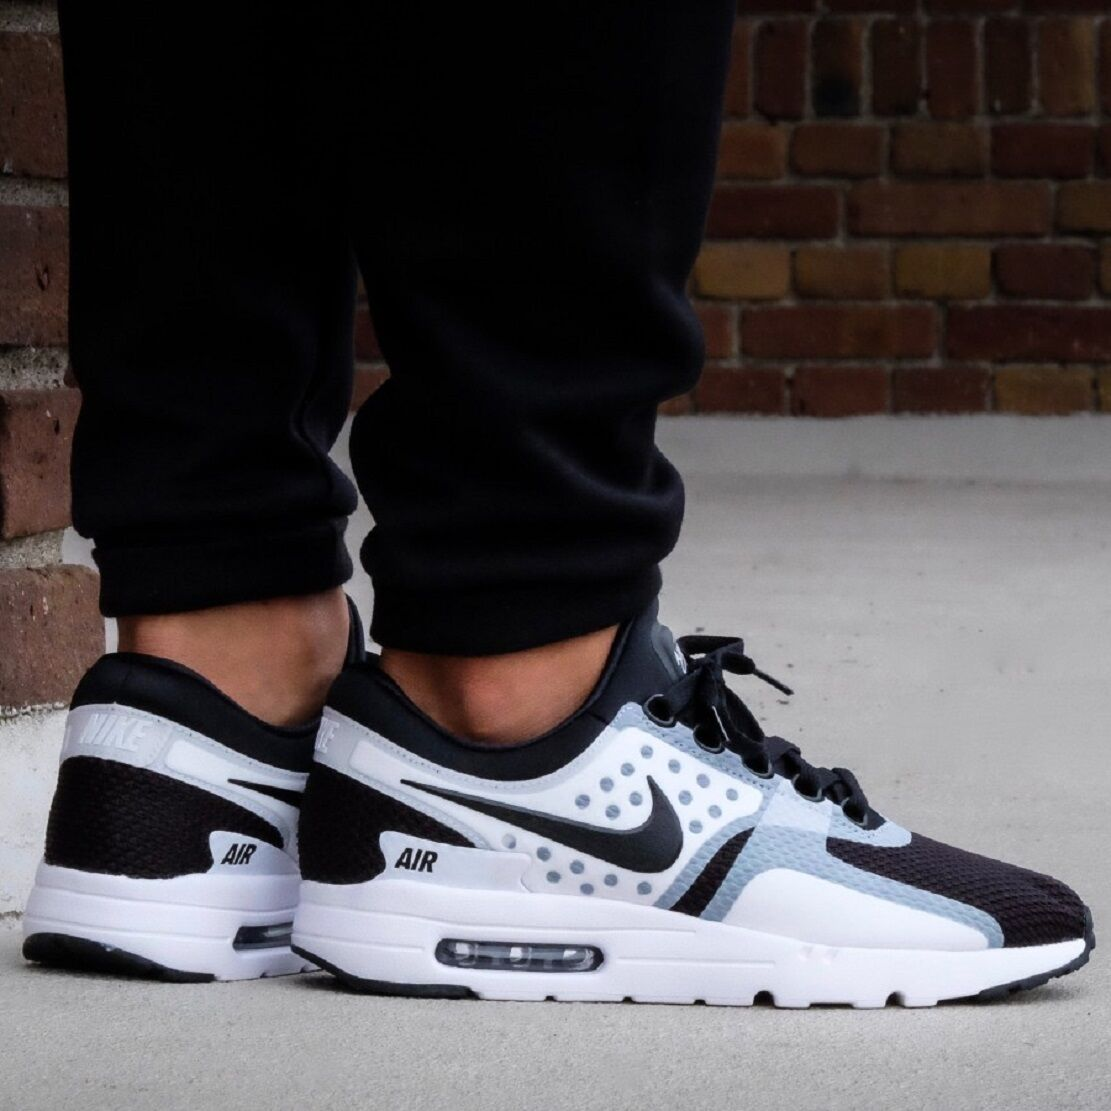 NIKE AIR MAX ZERO ESSENTIAL Homme COMFY Chaussures THE ONE BEFORE THE 1 Blanc / Noir